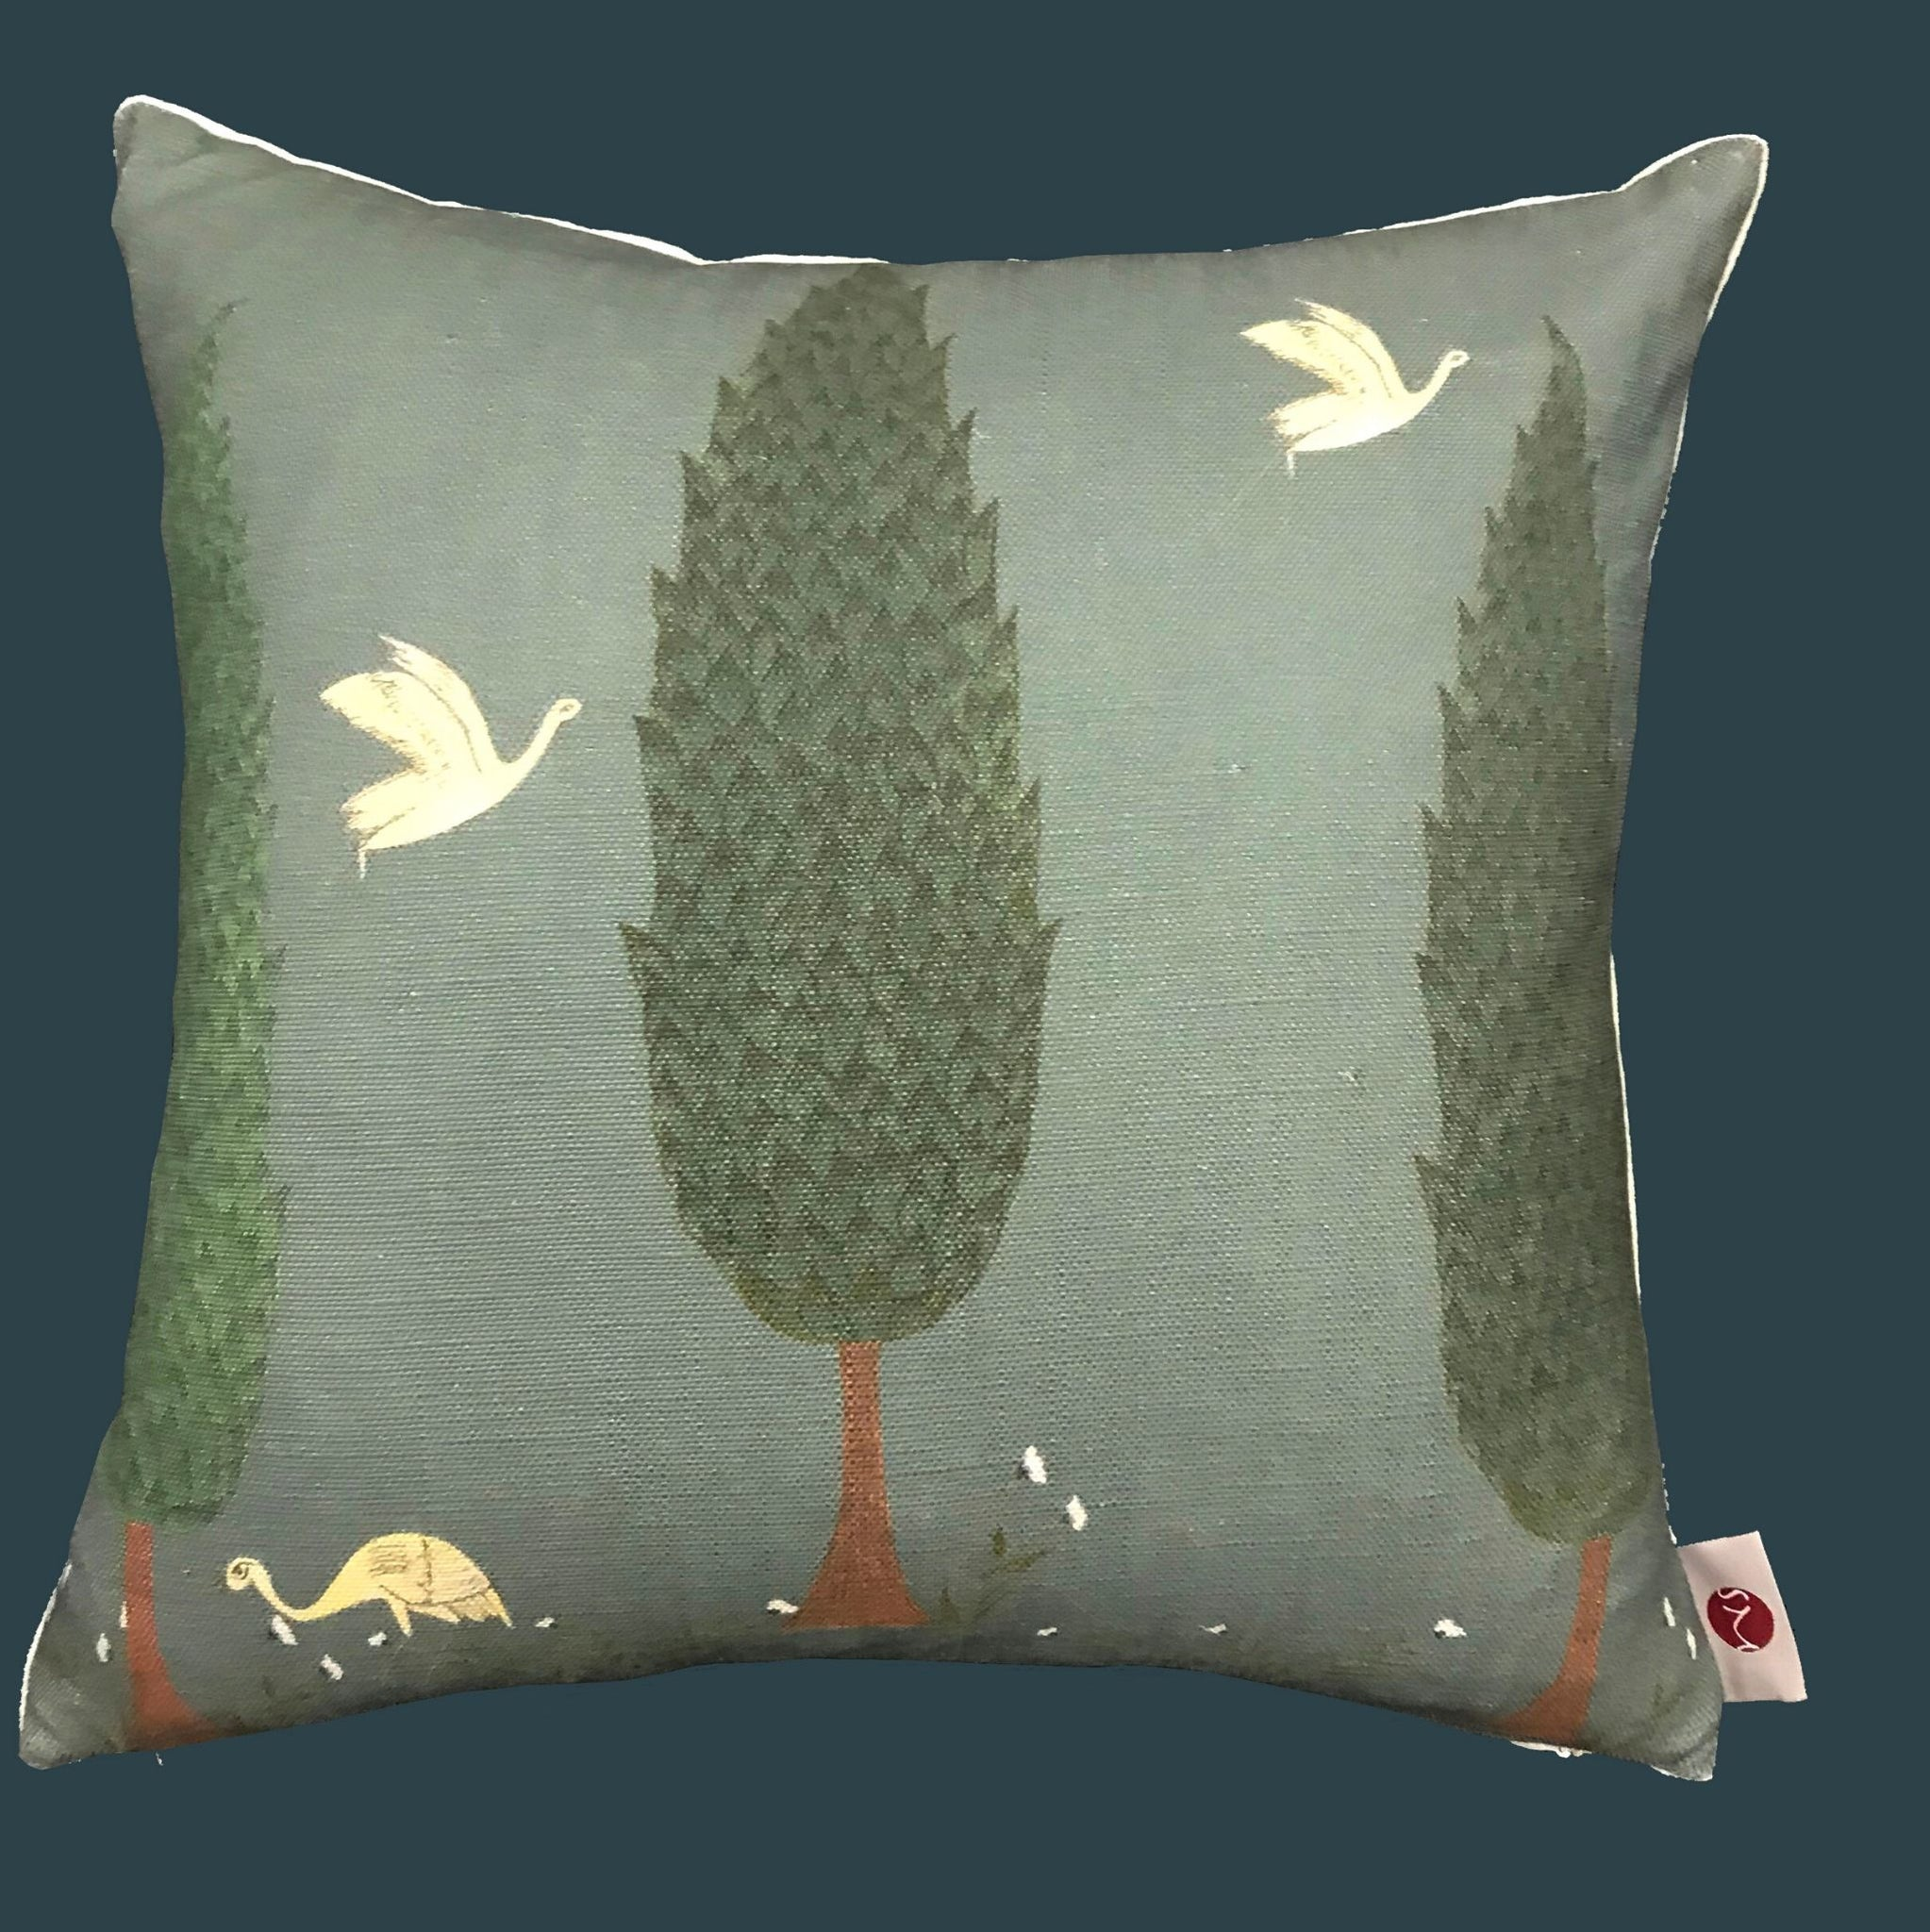 Tranquility cushion